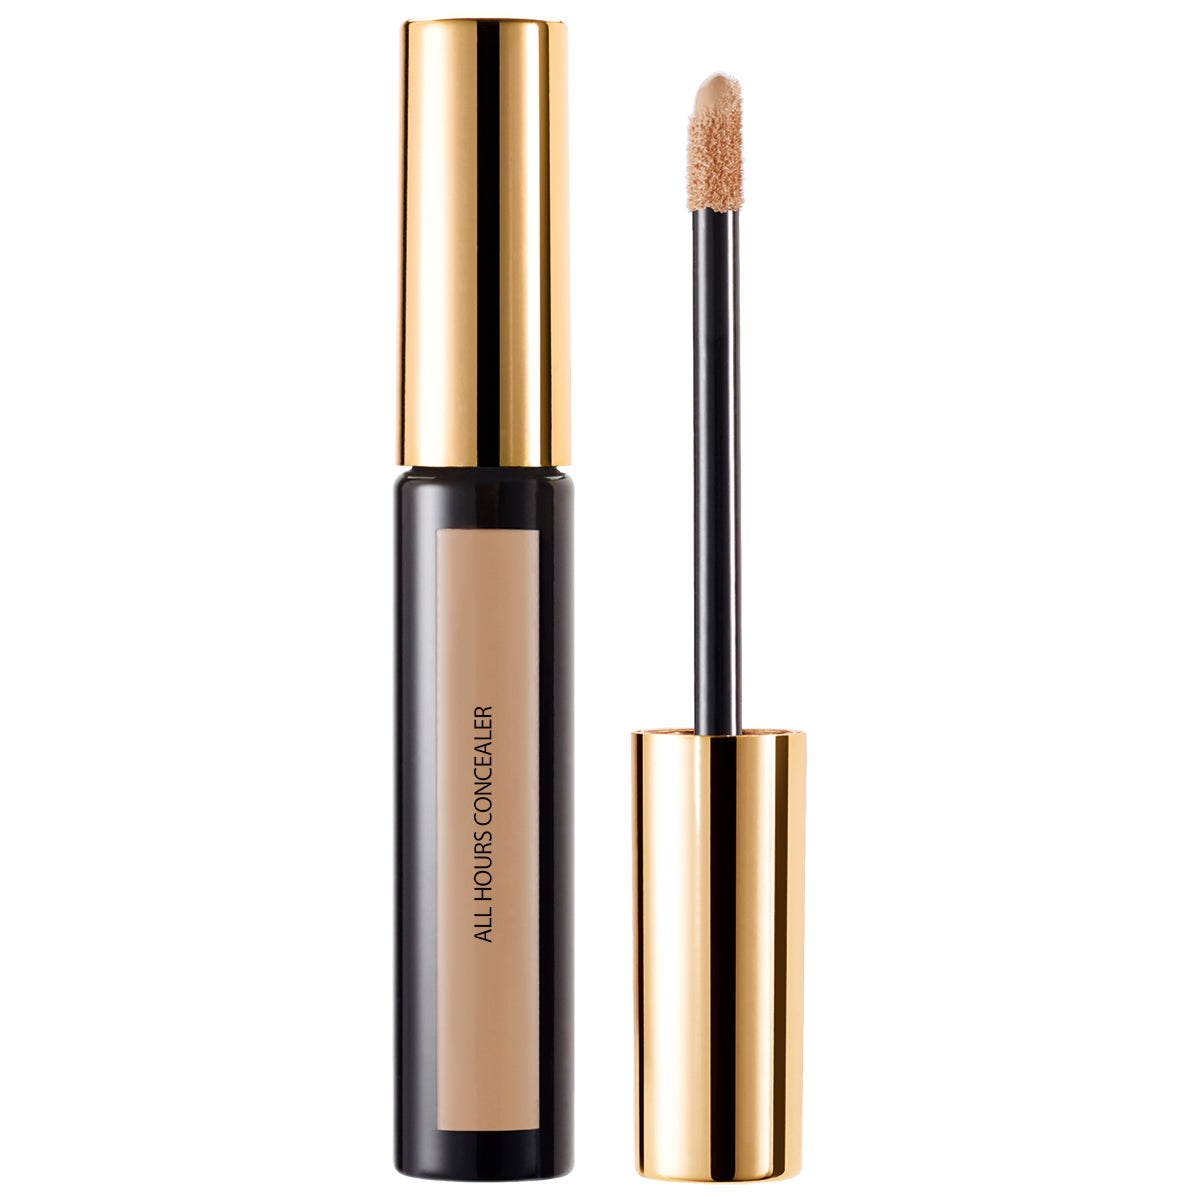 Yves Saint Laurent All Hours Concealer